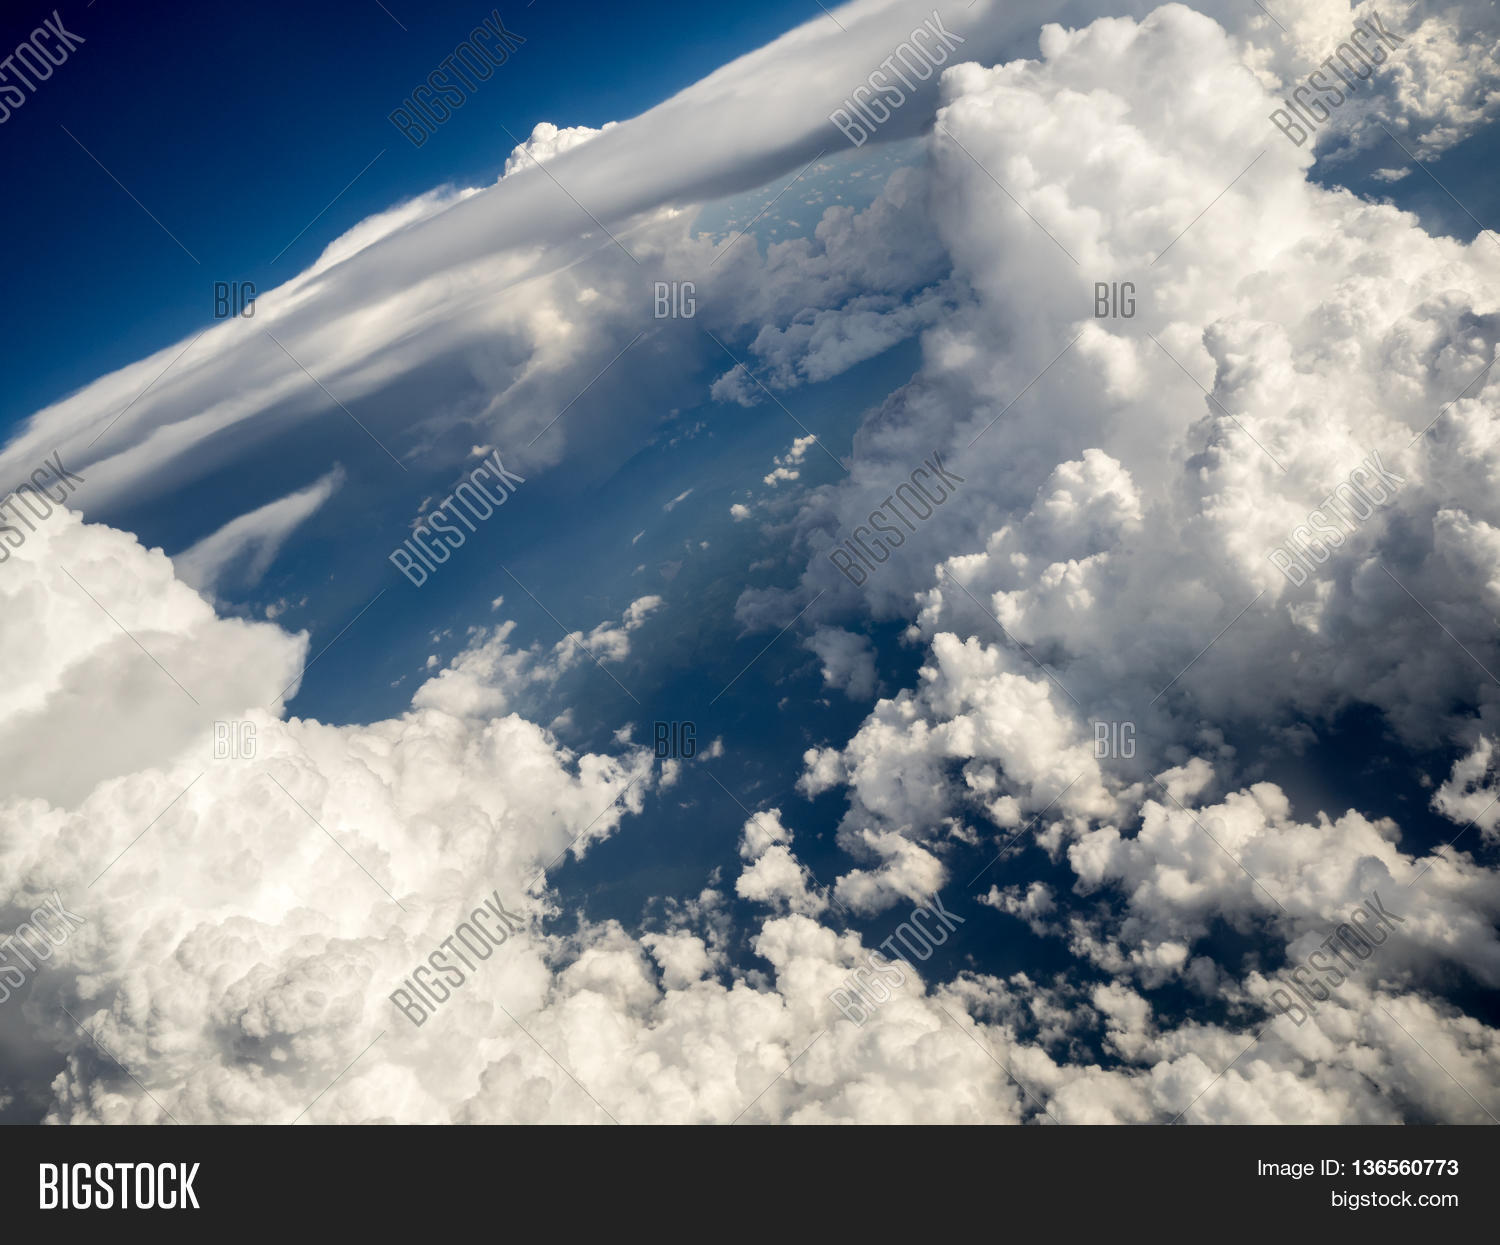 cumulus stratus clouds horizontal image photo bigstock. Black Bedroom Furniture Sets. Home Design Ideas